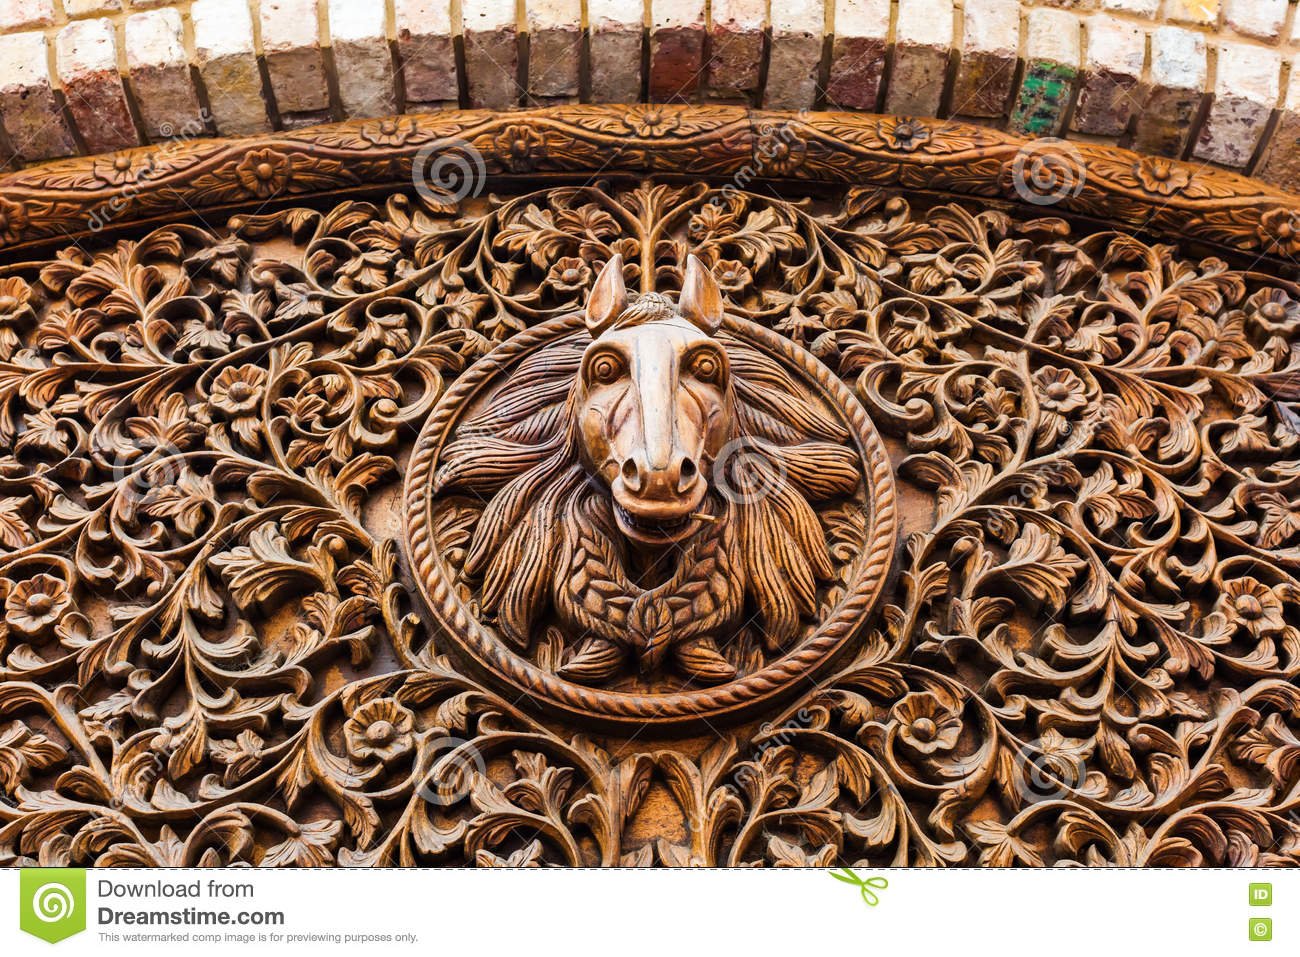 Wood Carving Of A Horse Head Stock Image Image Of Building Wood 76060927